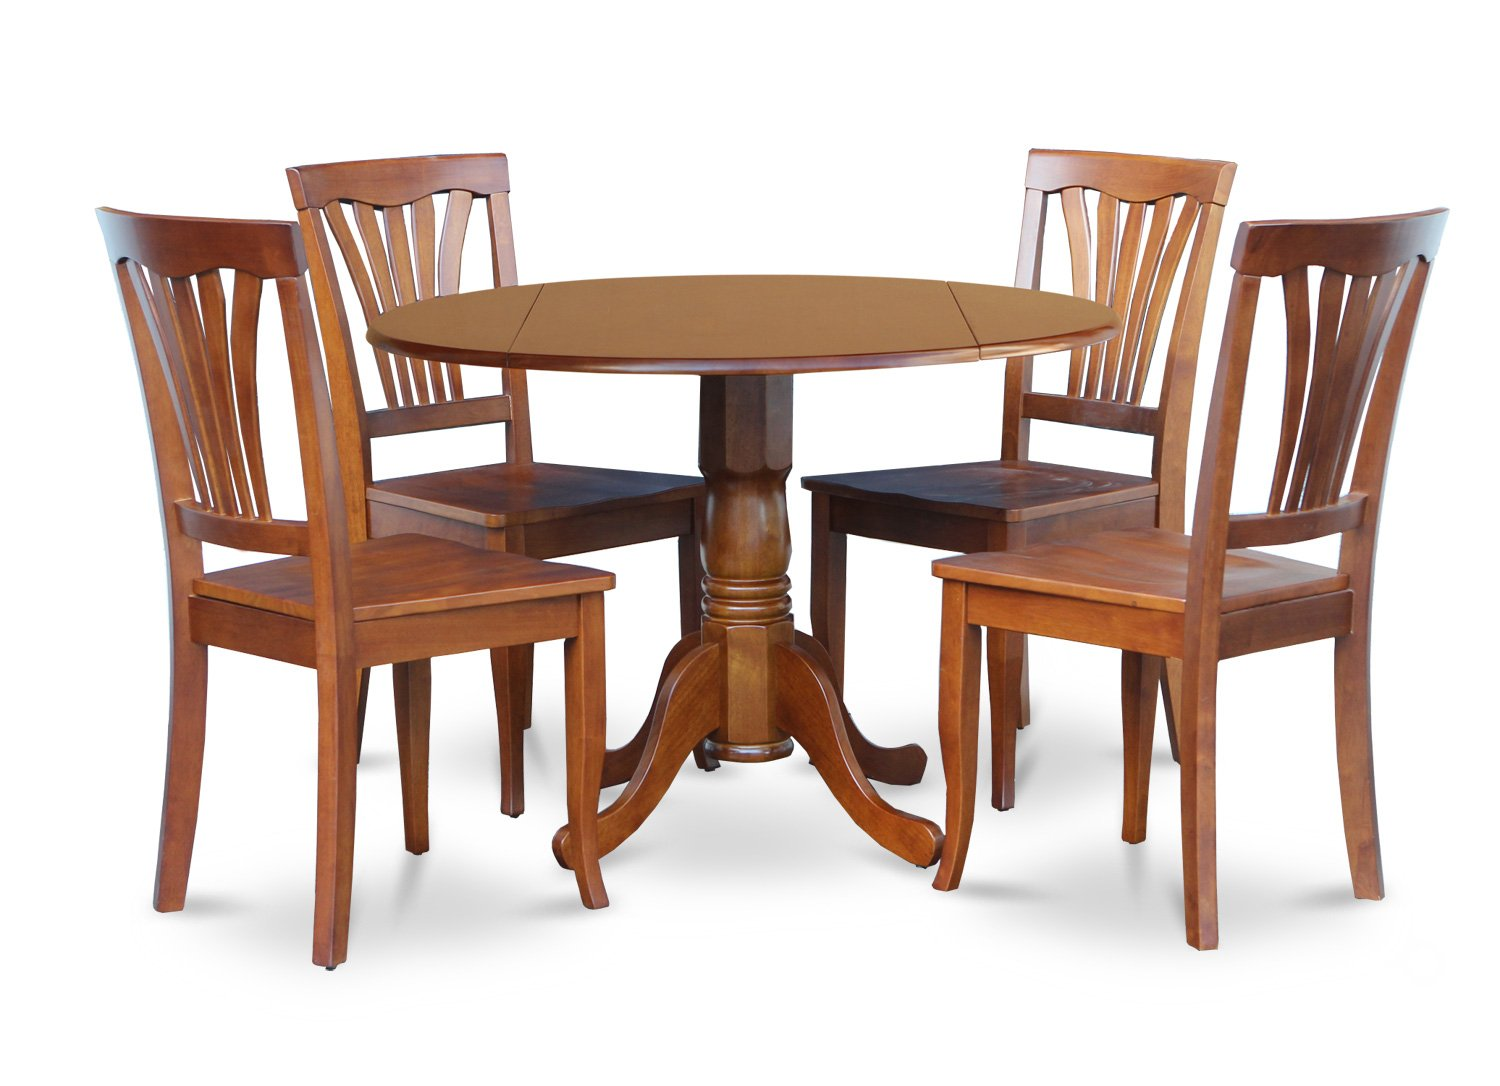 Round Kitchen Table And Chairs 5 Piece Dublin Dinette Kitchen 42 Diameter Round Table 4